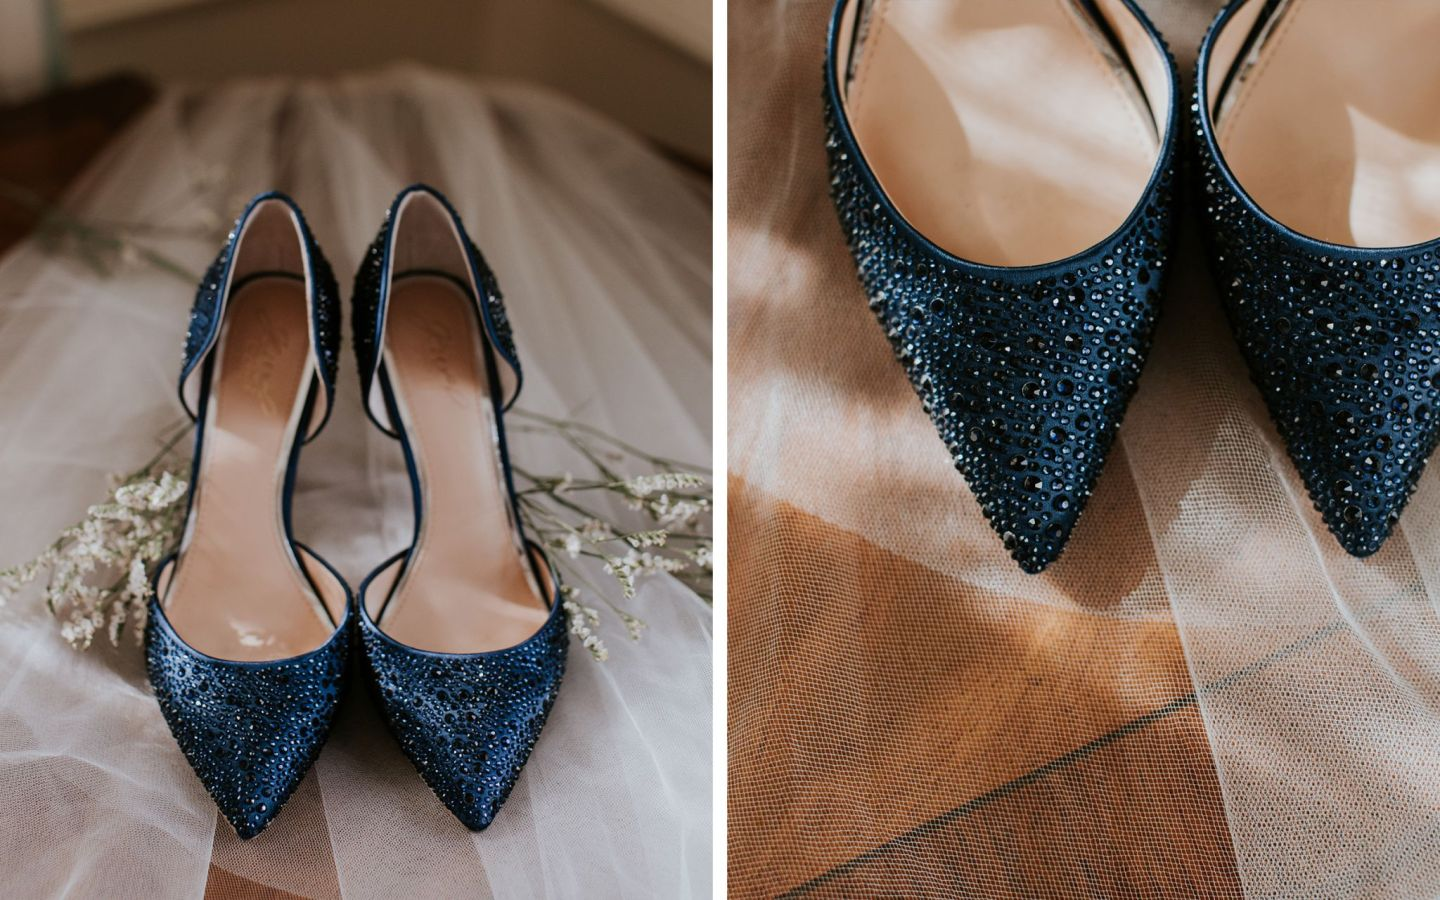 charlottesville bride - charlottesville wedding - badgley mischka jewel - something blue shoes - winter bride